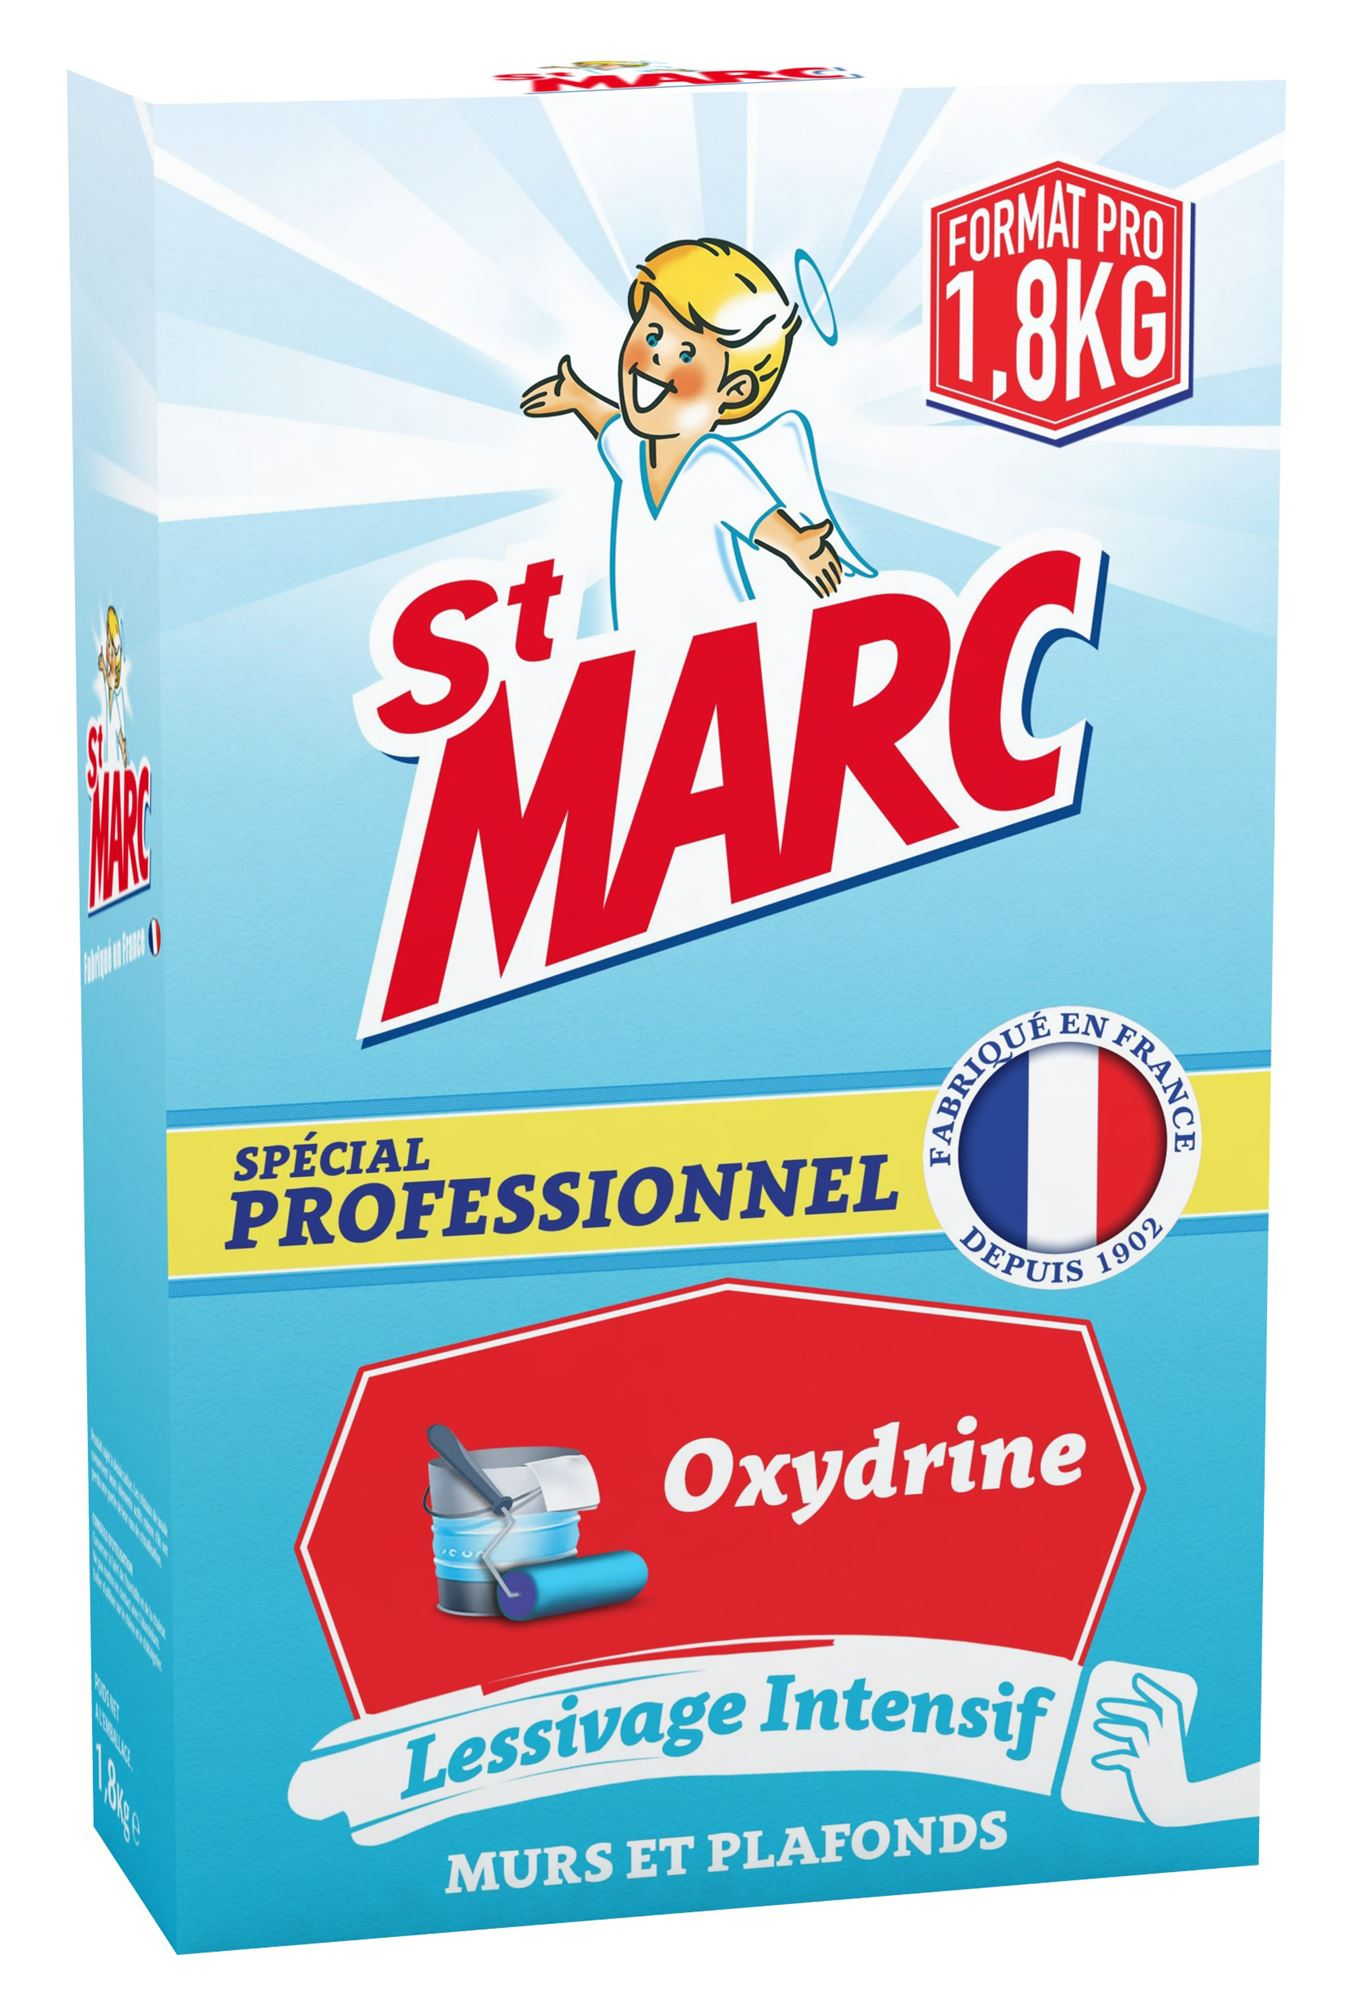 Lessive saint marc oxydrine - Lessive saint marc composition ...